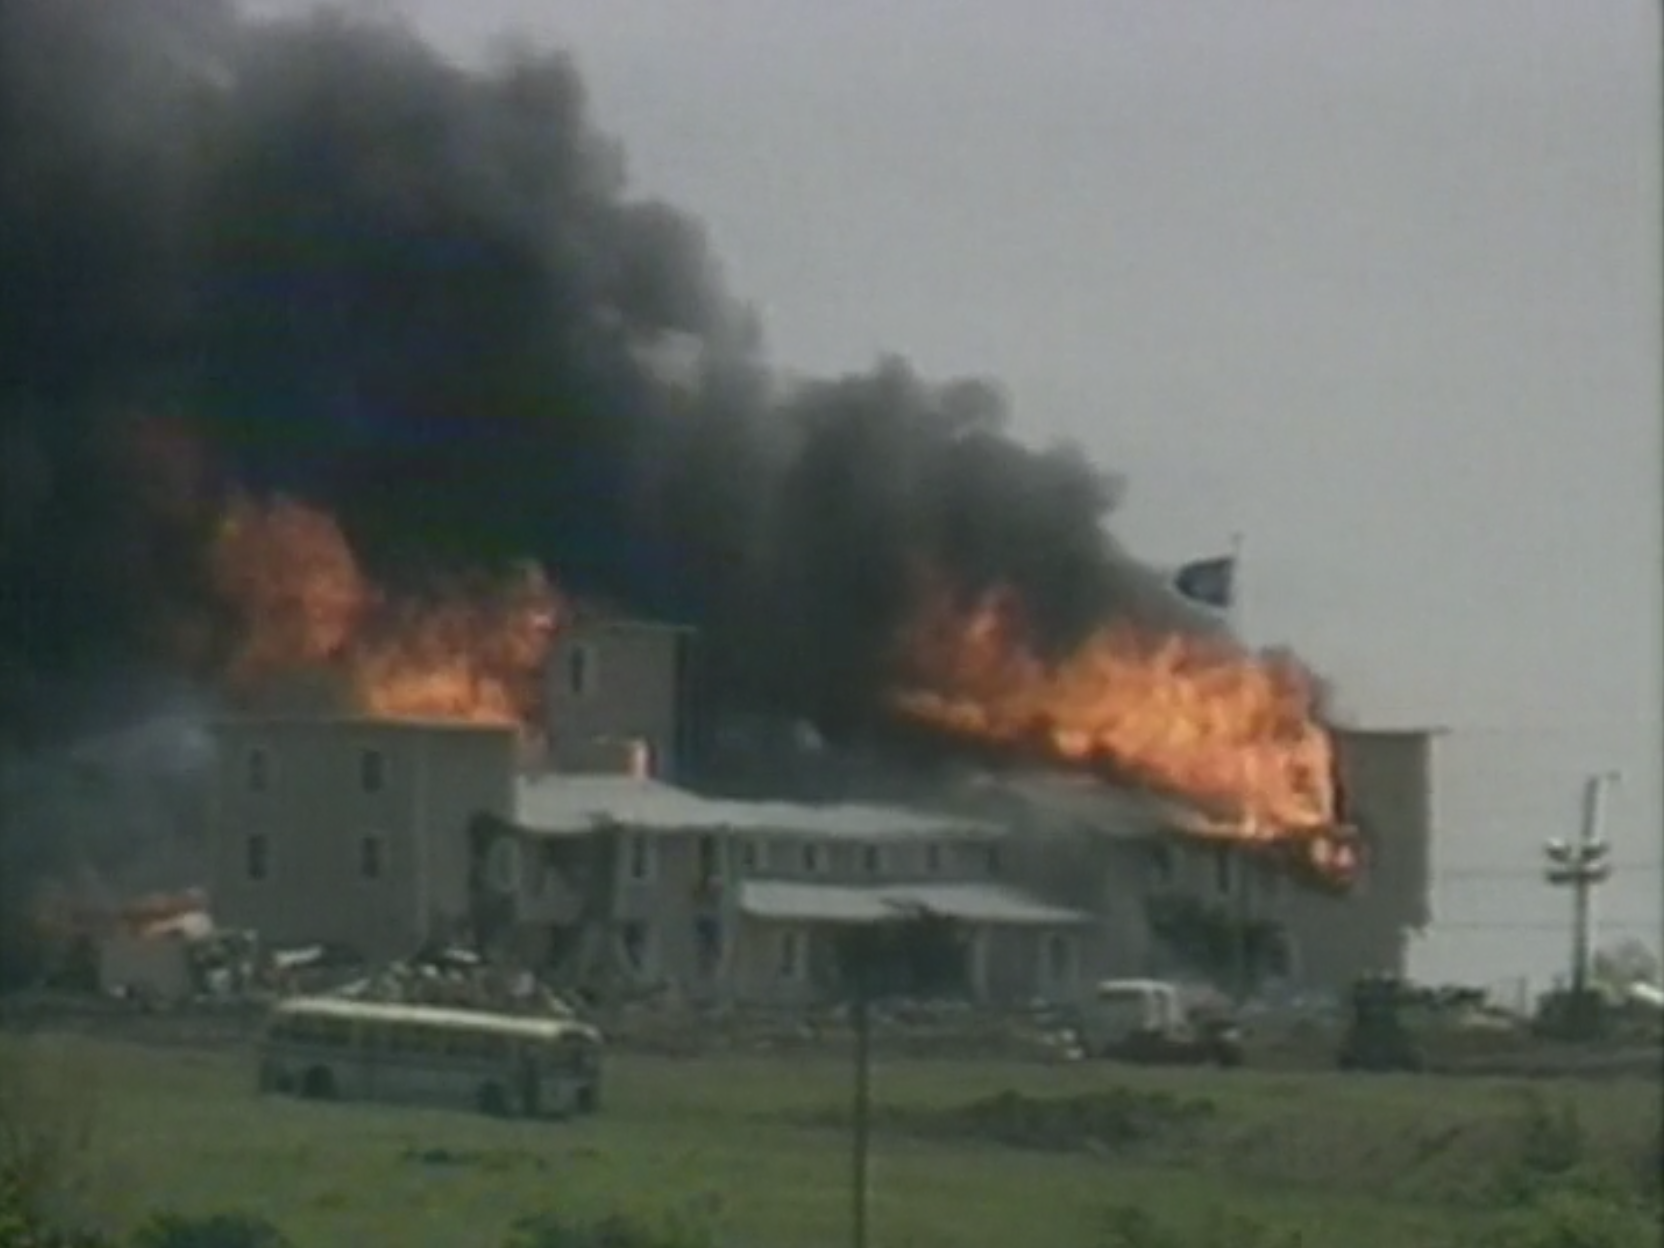 best documentaries on amazon: Waco Rules of Engagement